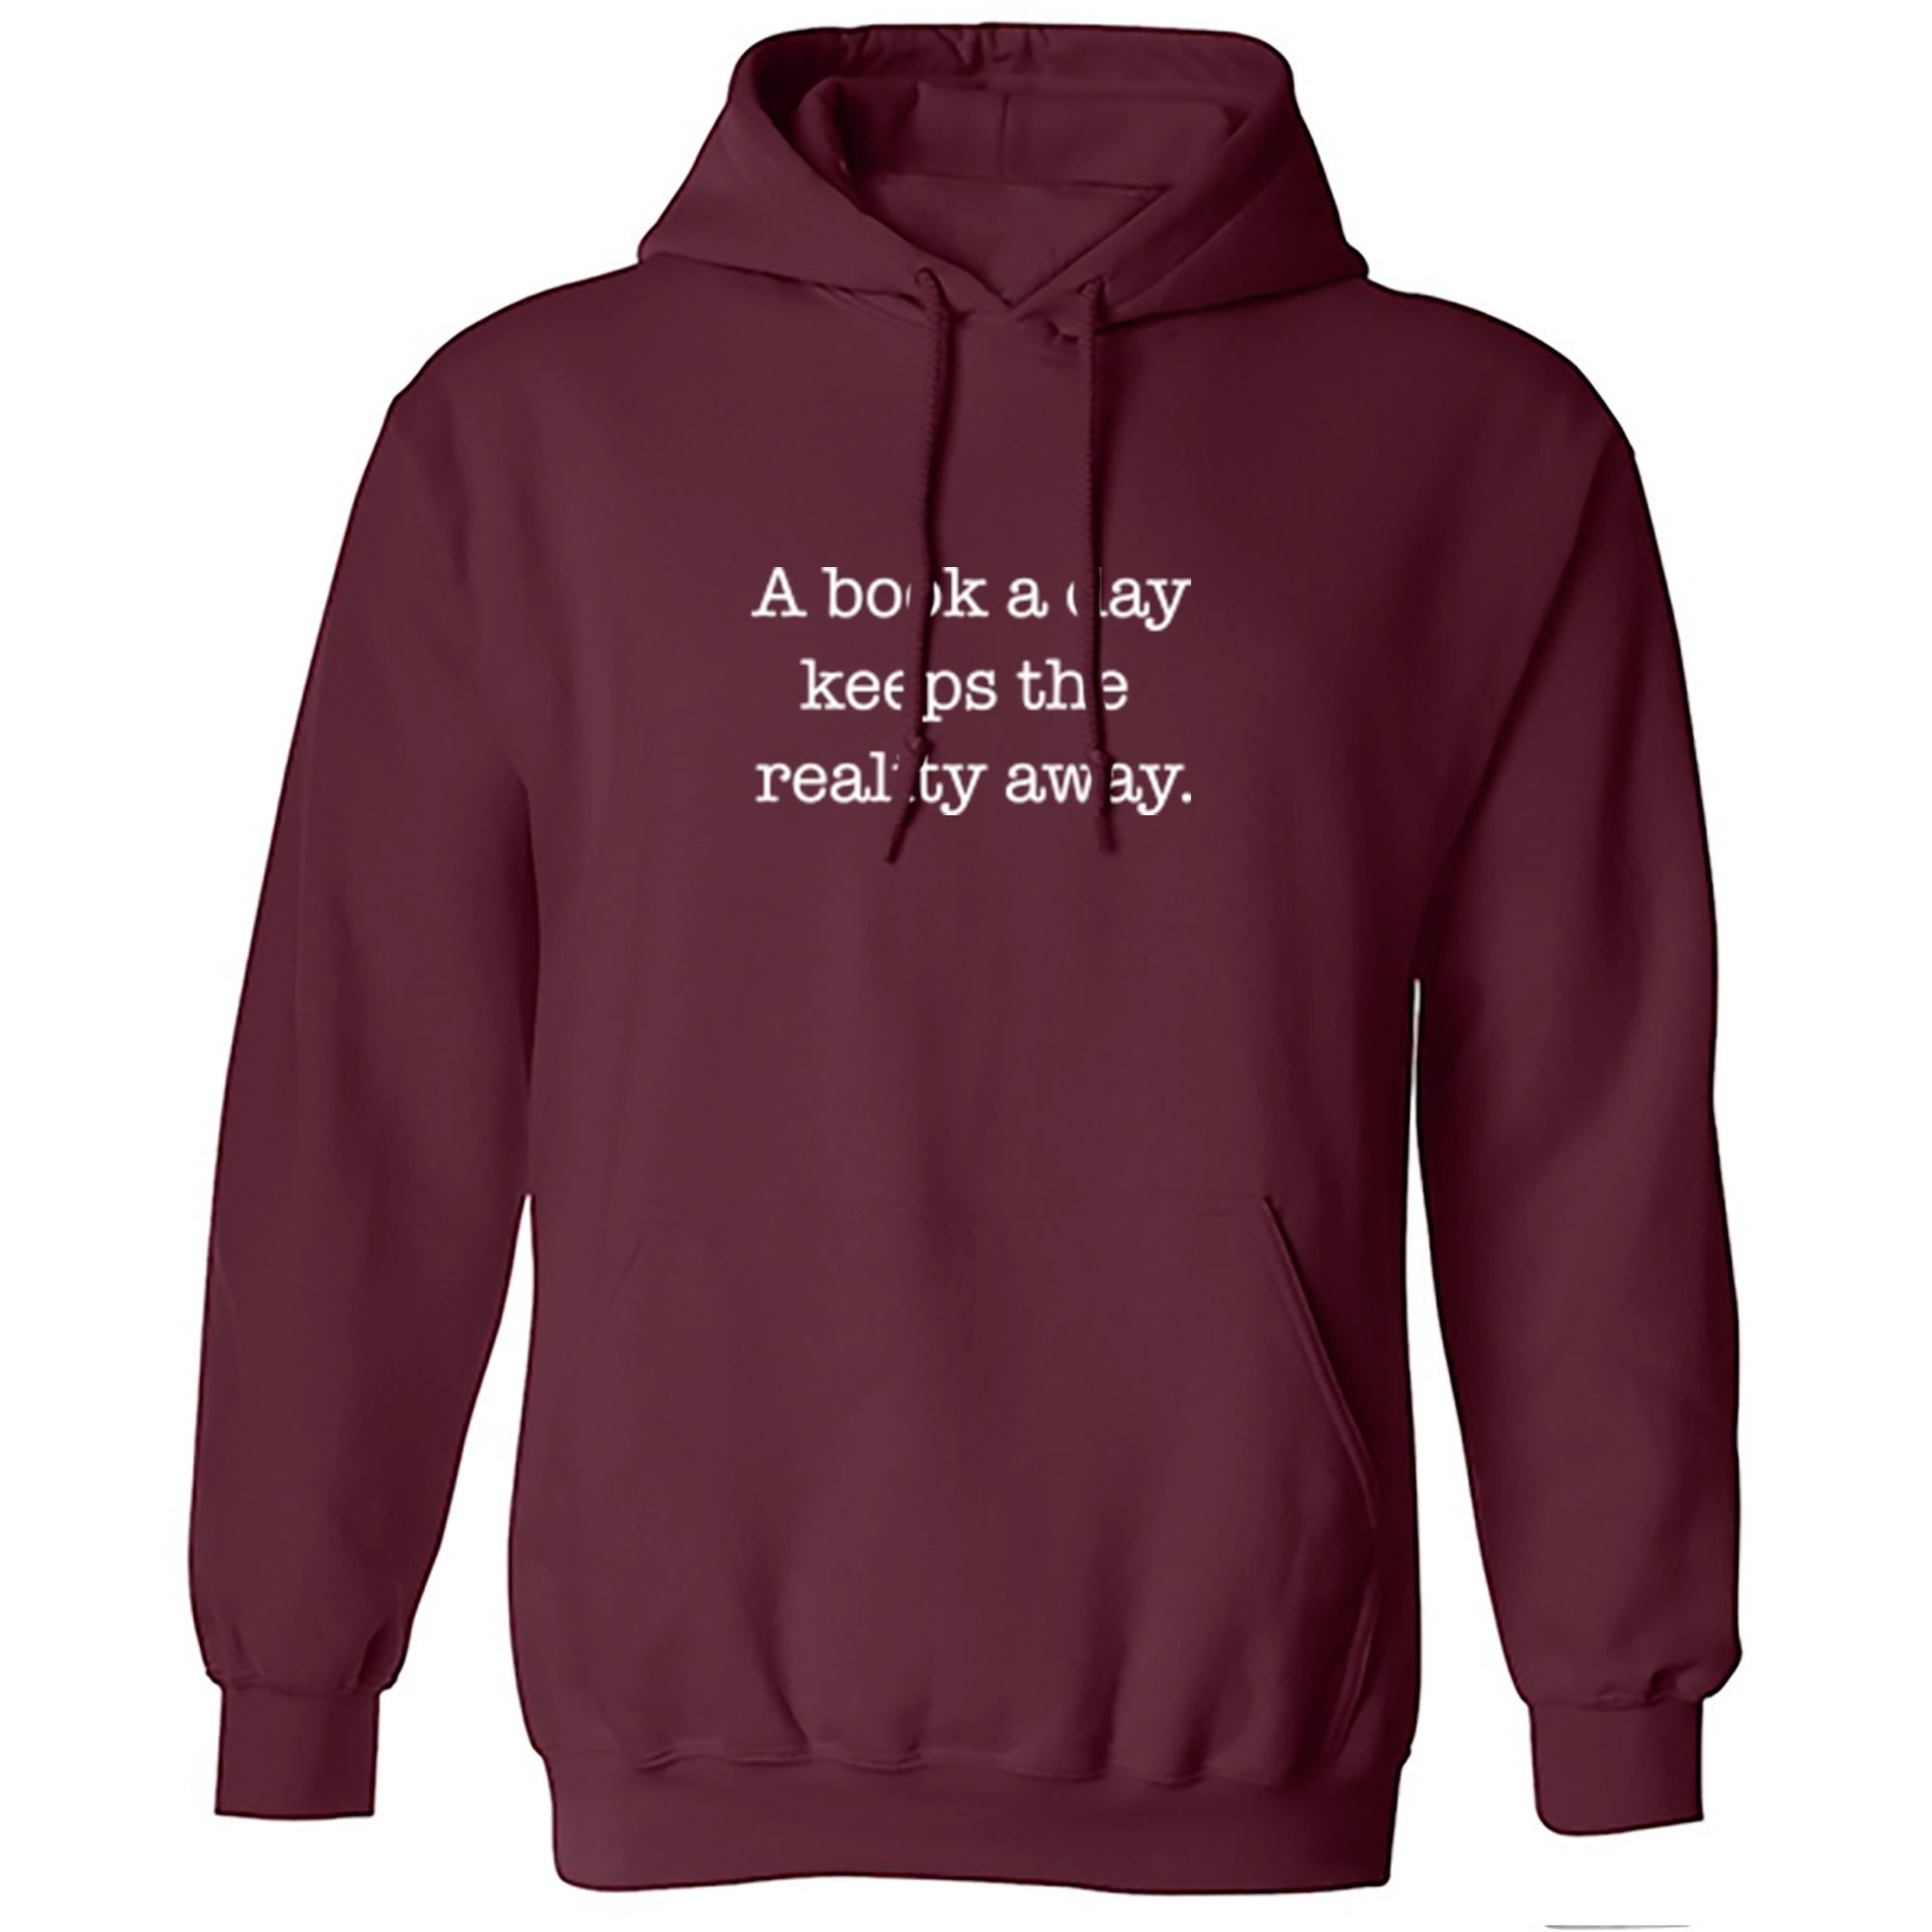 A Book A Day Keeps The Reality Away Unisex Hoodie S1093 - Illustrated Identity Ltd.